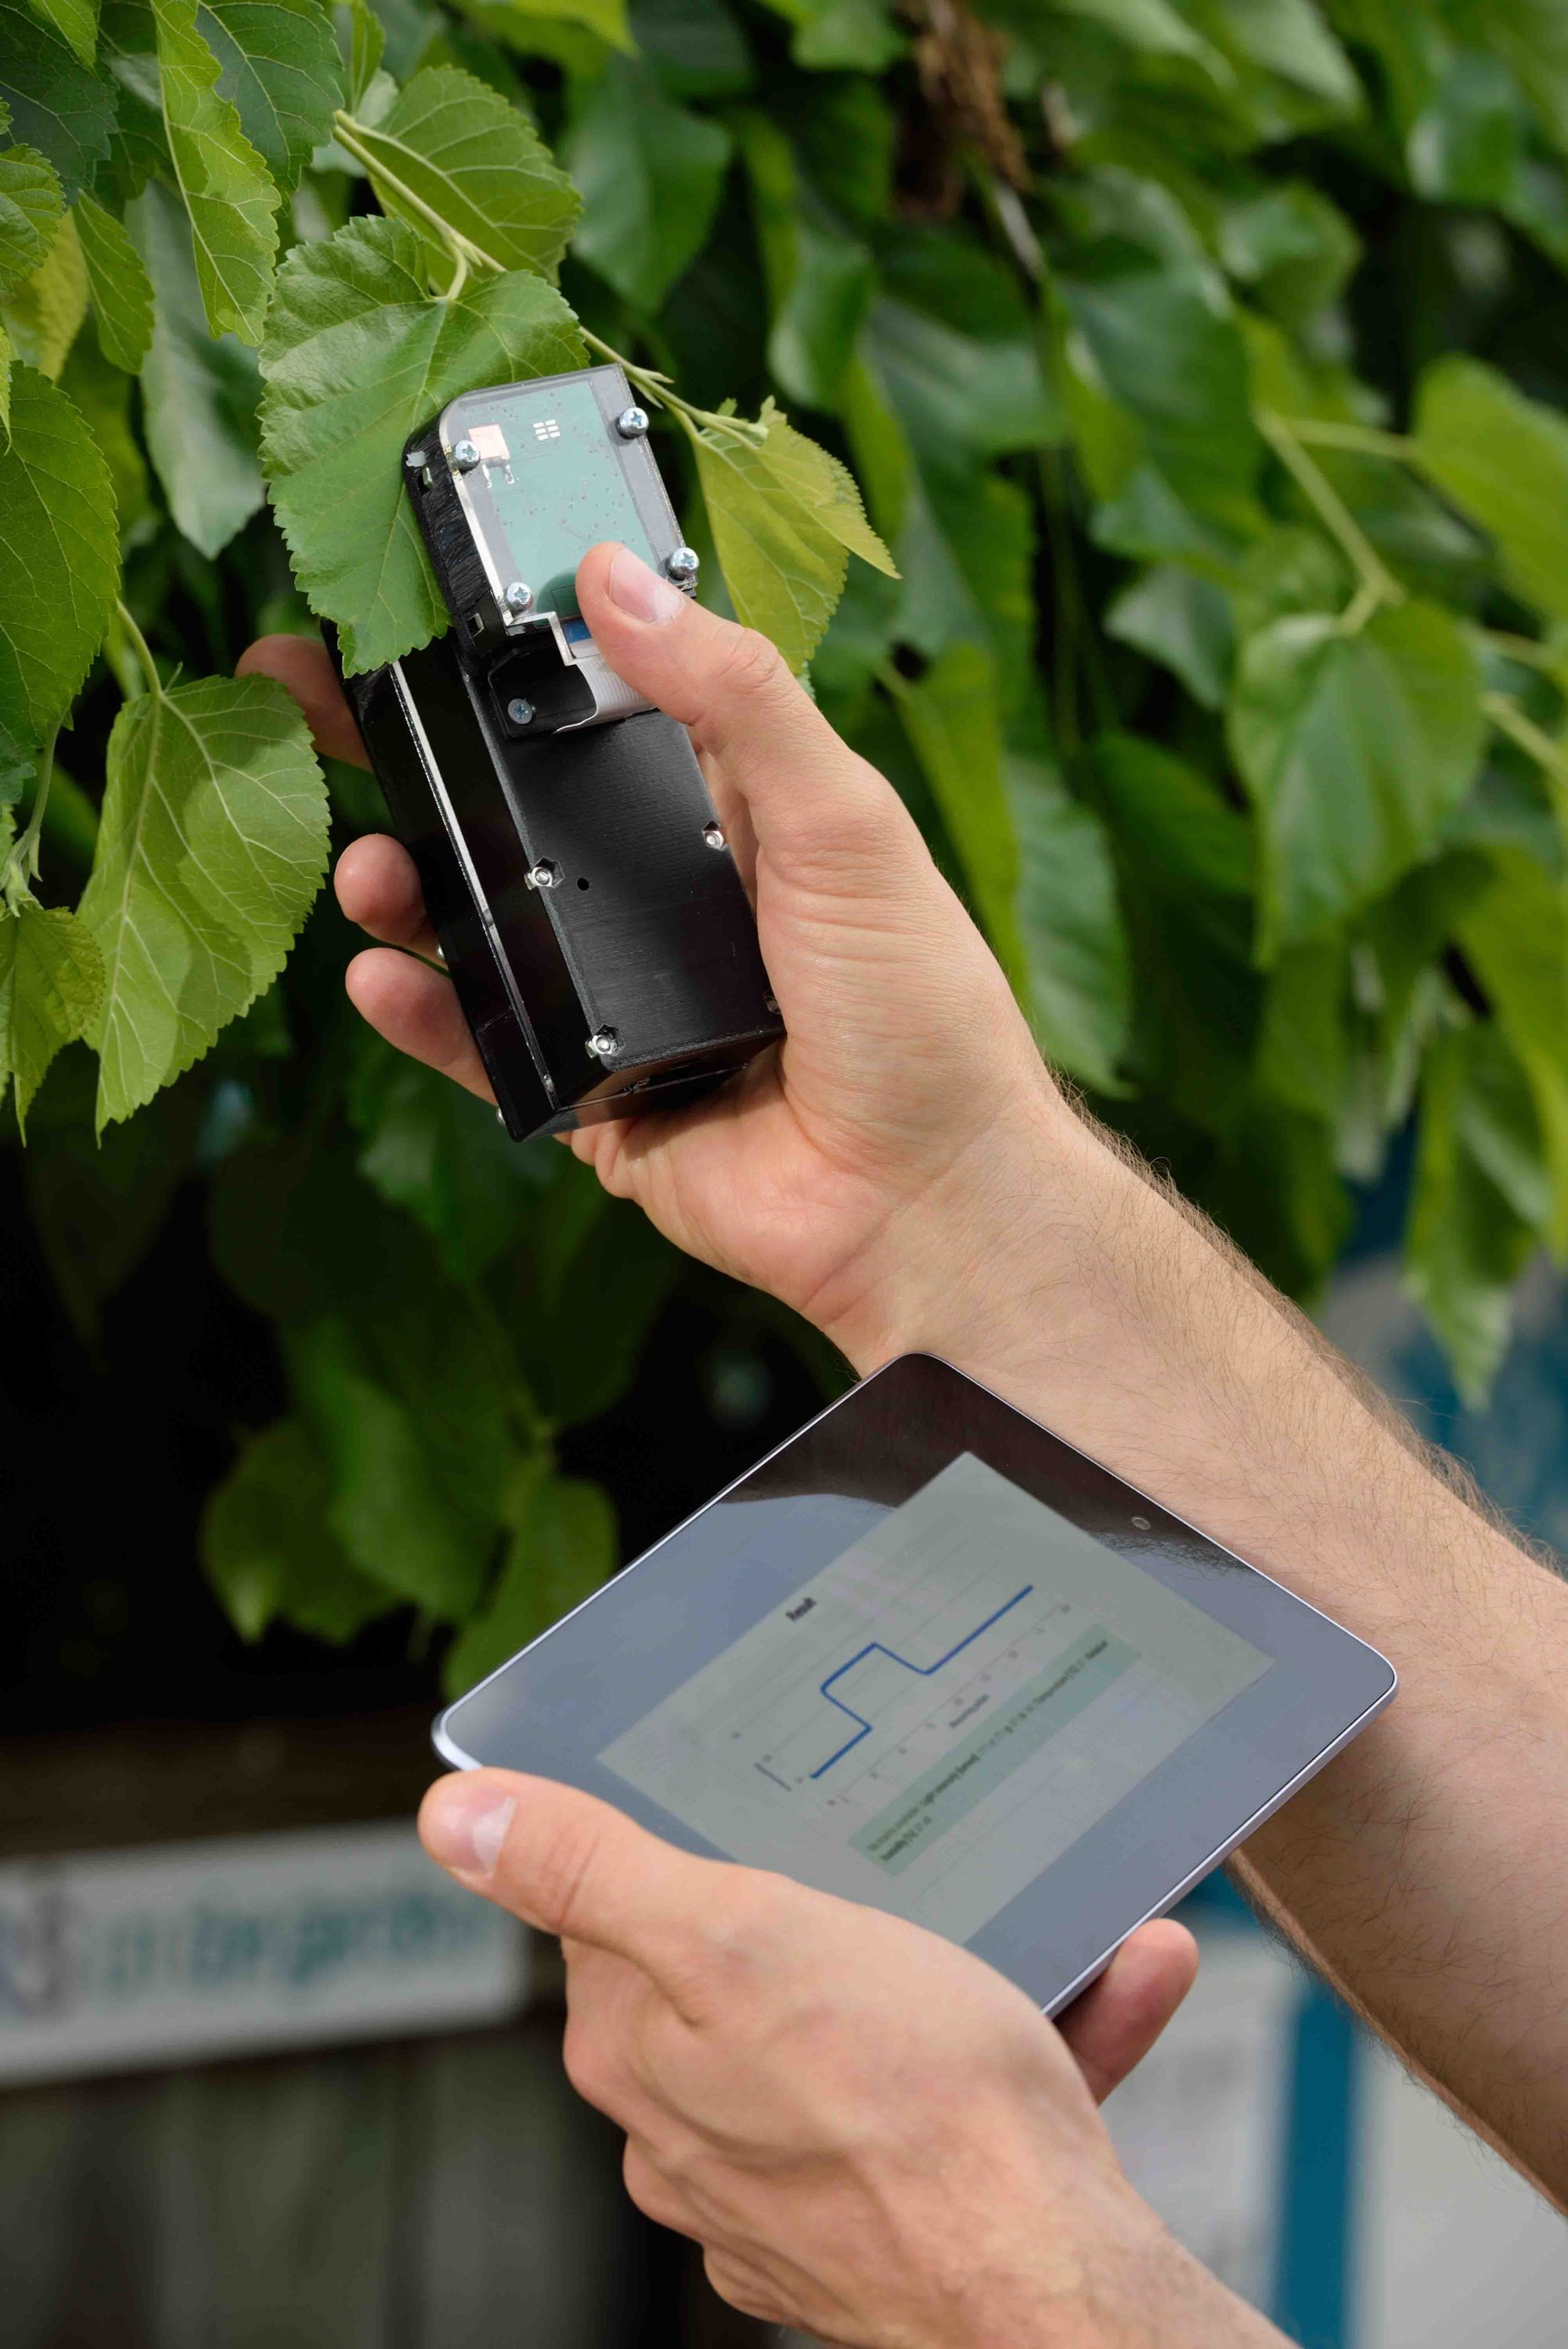 An image that shows a device clipping to a plant and immediately uploading data to a mobile app.